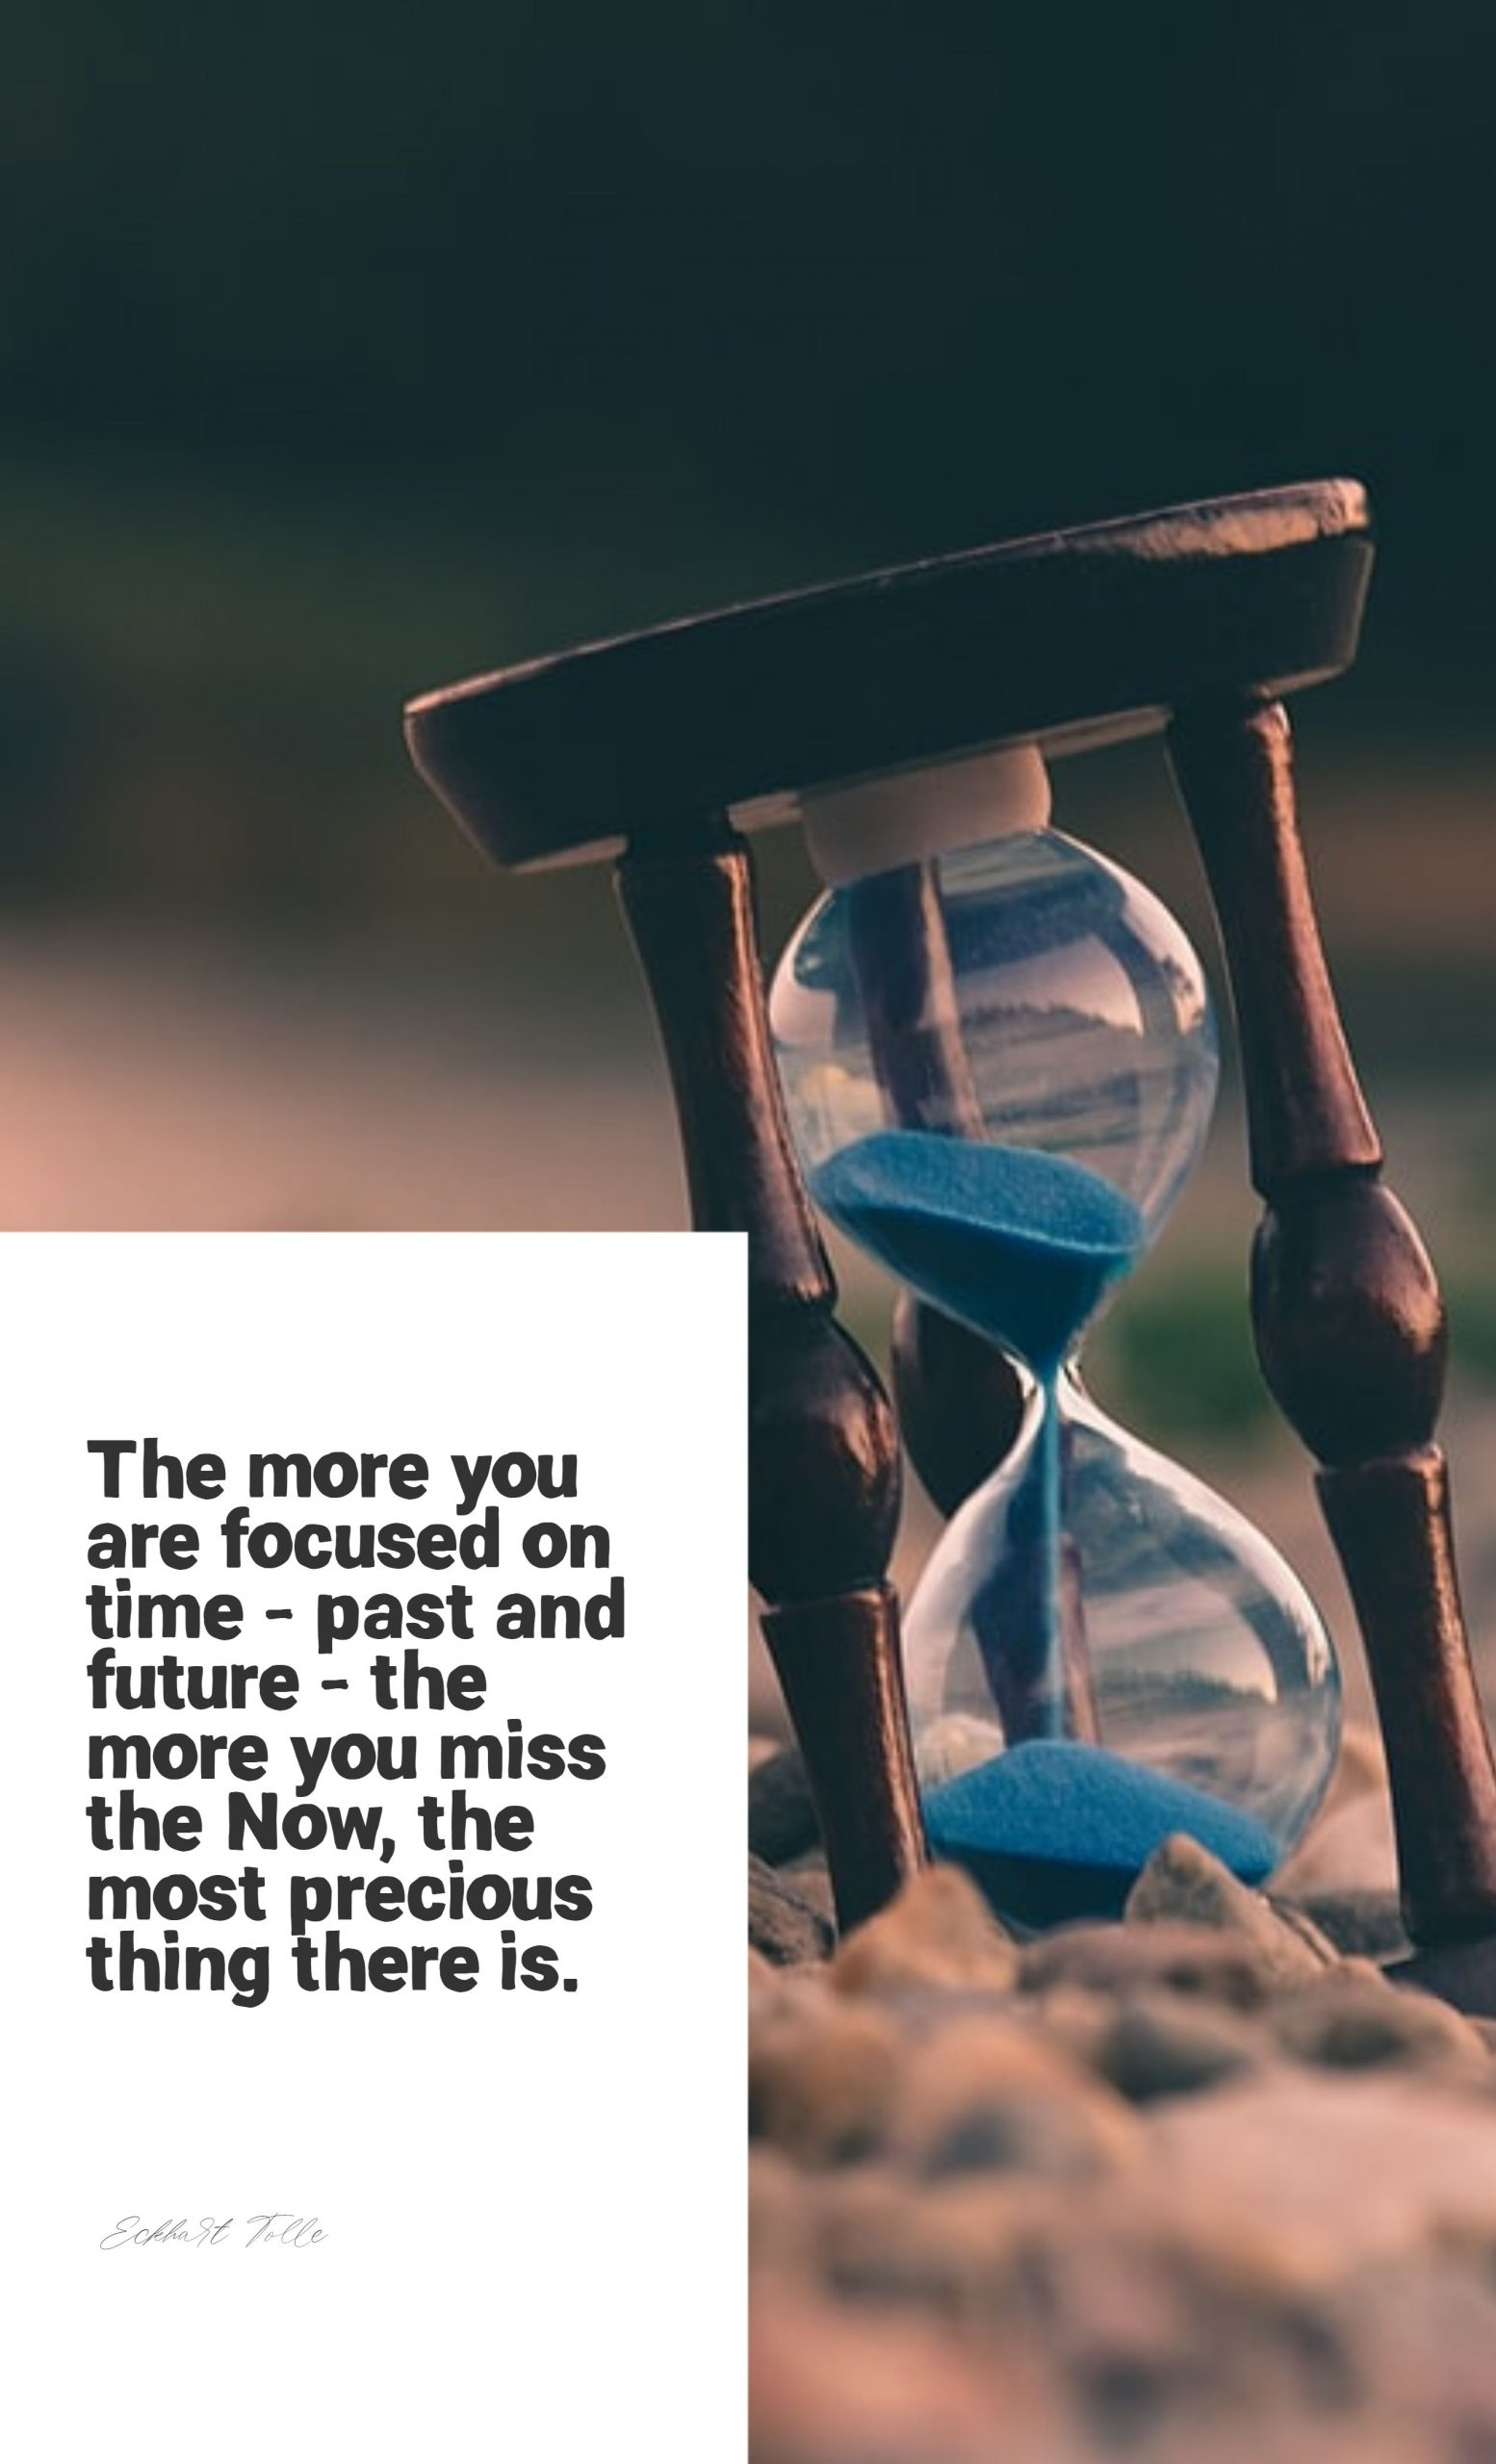 Quotes image of The more you are focused on time - past and future - the more you miss the Now, the most precious thing there is.